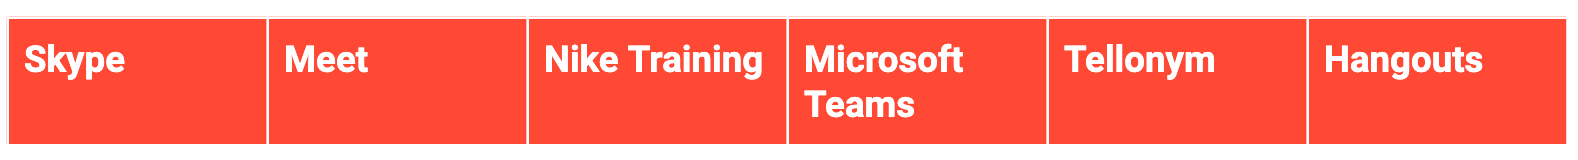 skype, meet, nike training, microsoft teams, tellonym, hangouts